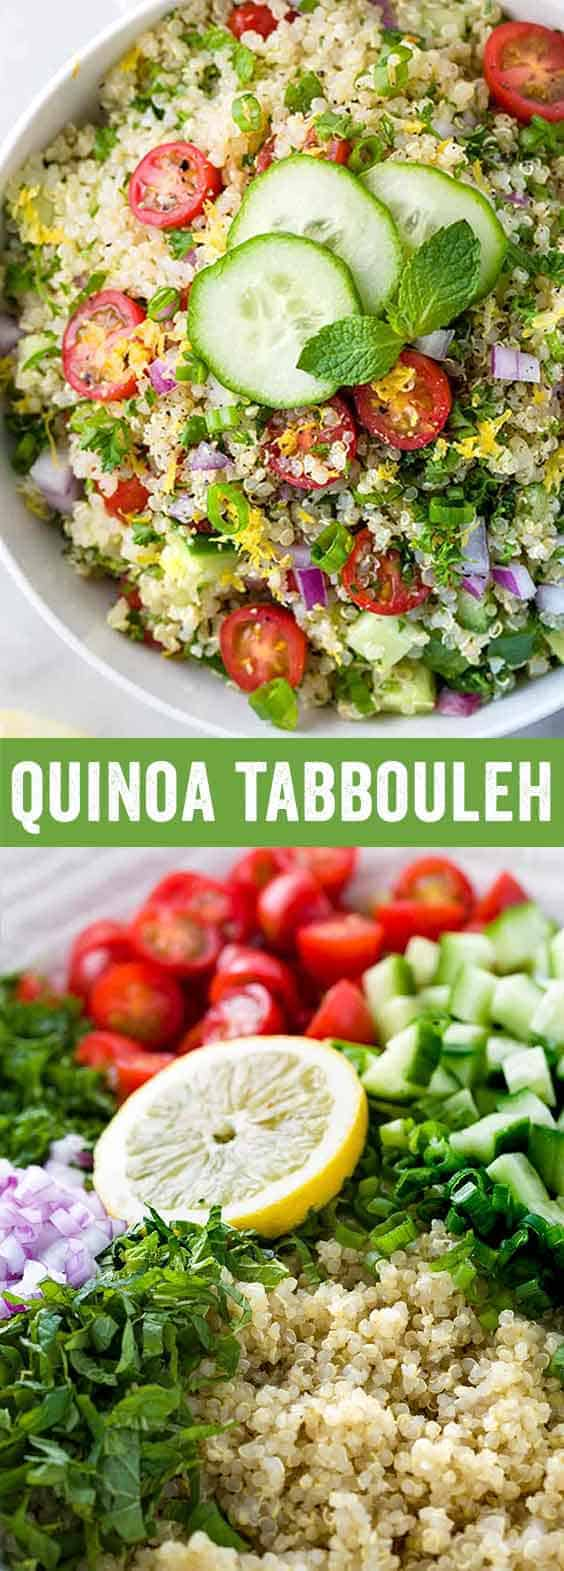 Quinoa tabbouleh is a low-calorieMiddle Easternside dish packed with plant protein, fresh vegetables, and herbs in each serving. This healthy salad is drizzled with a simple homemade lemon garlic dressing.